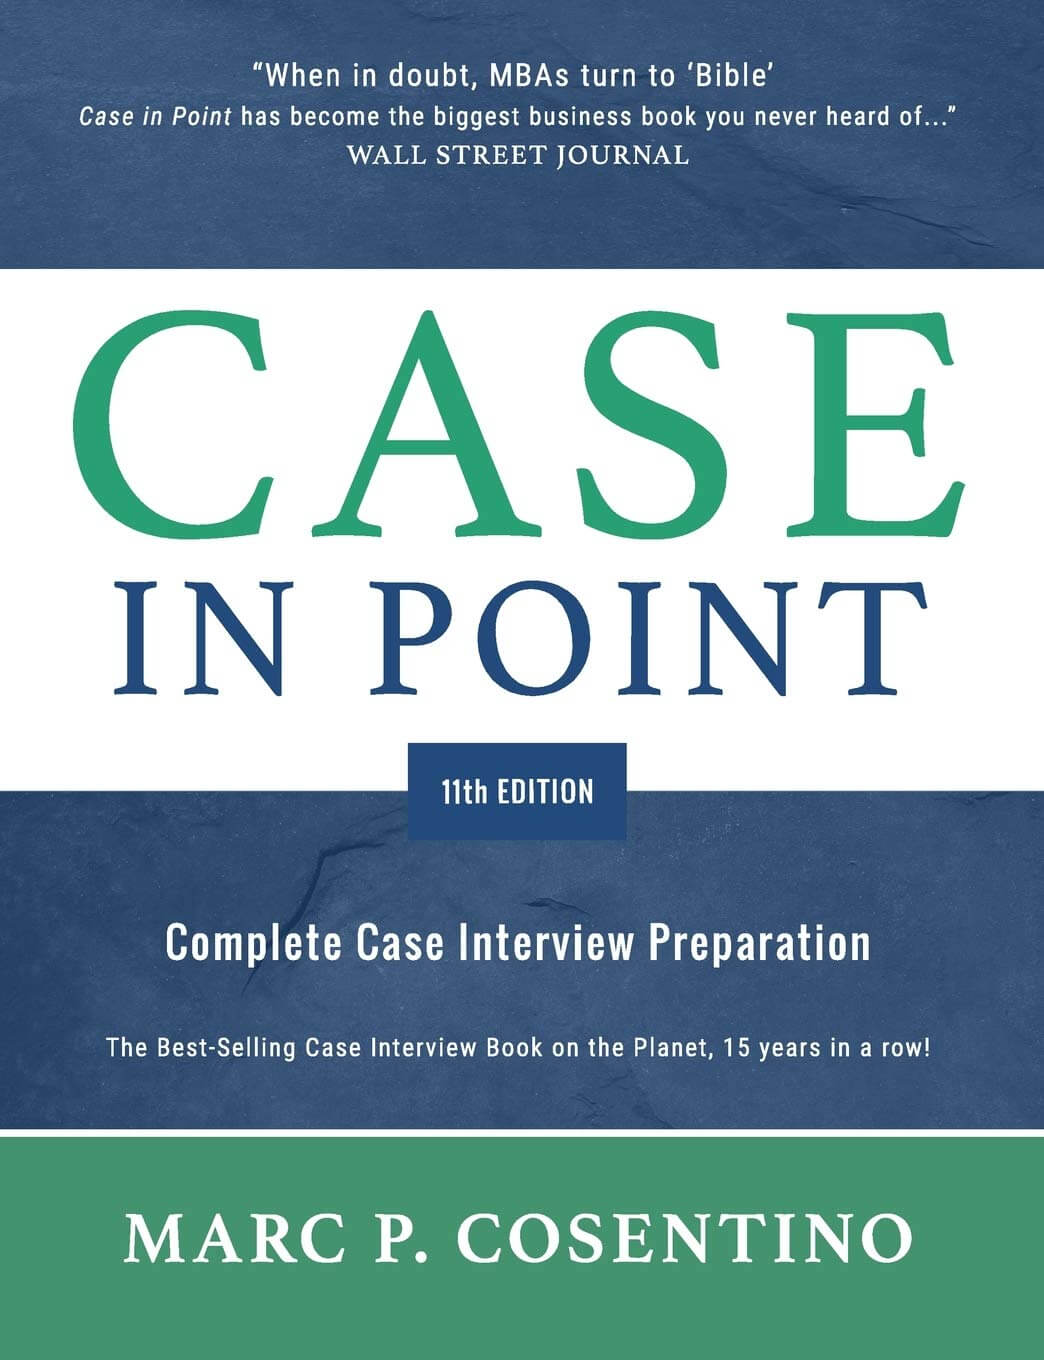 Case in Point Book Cover